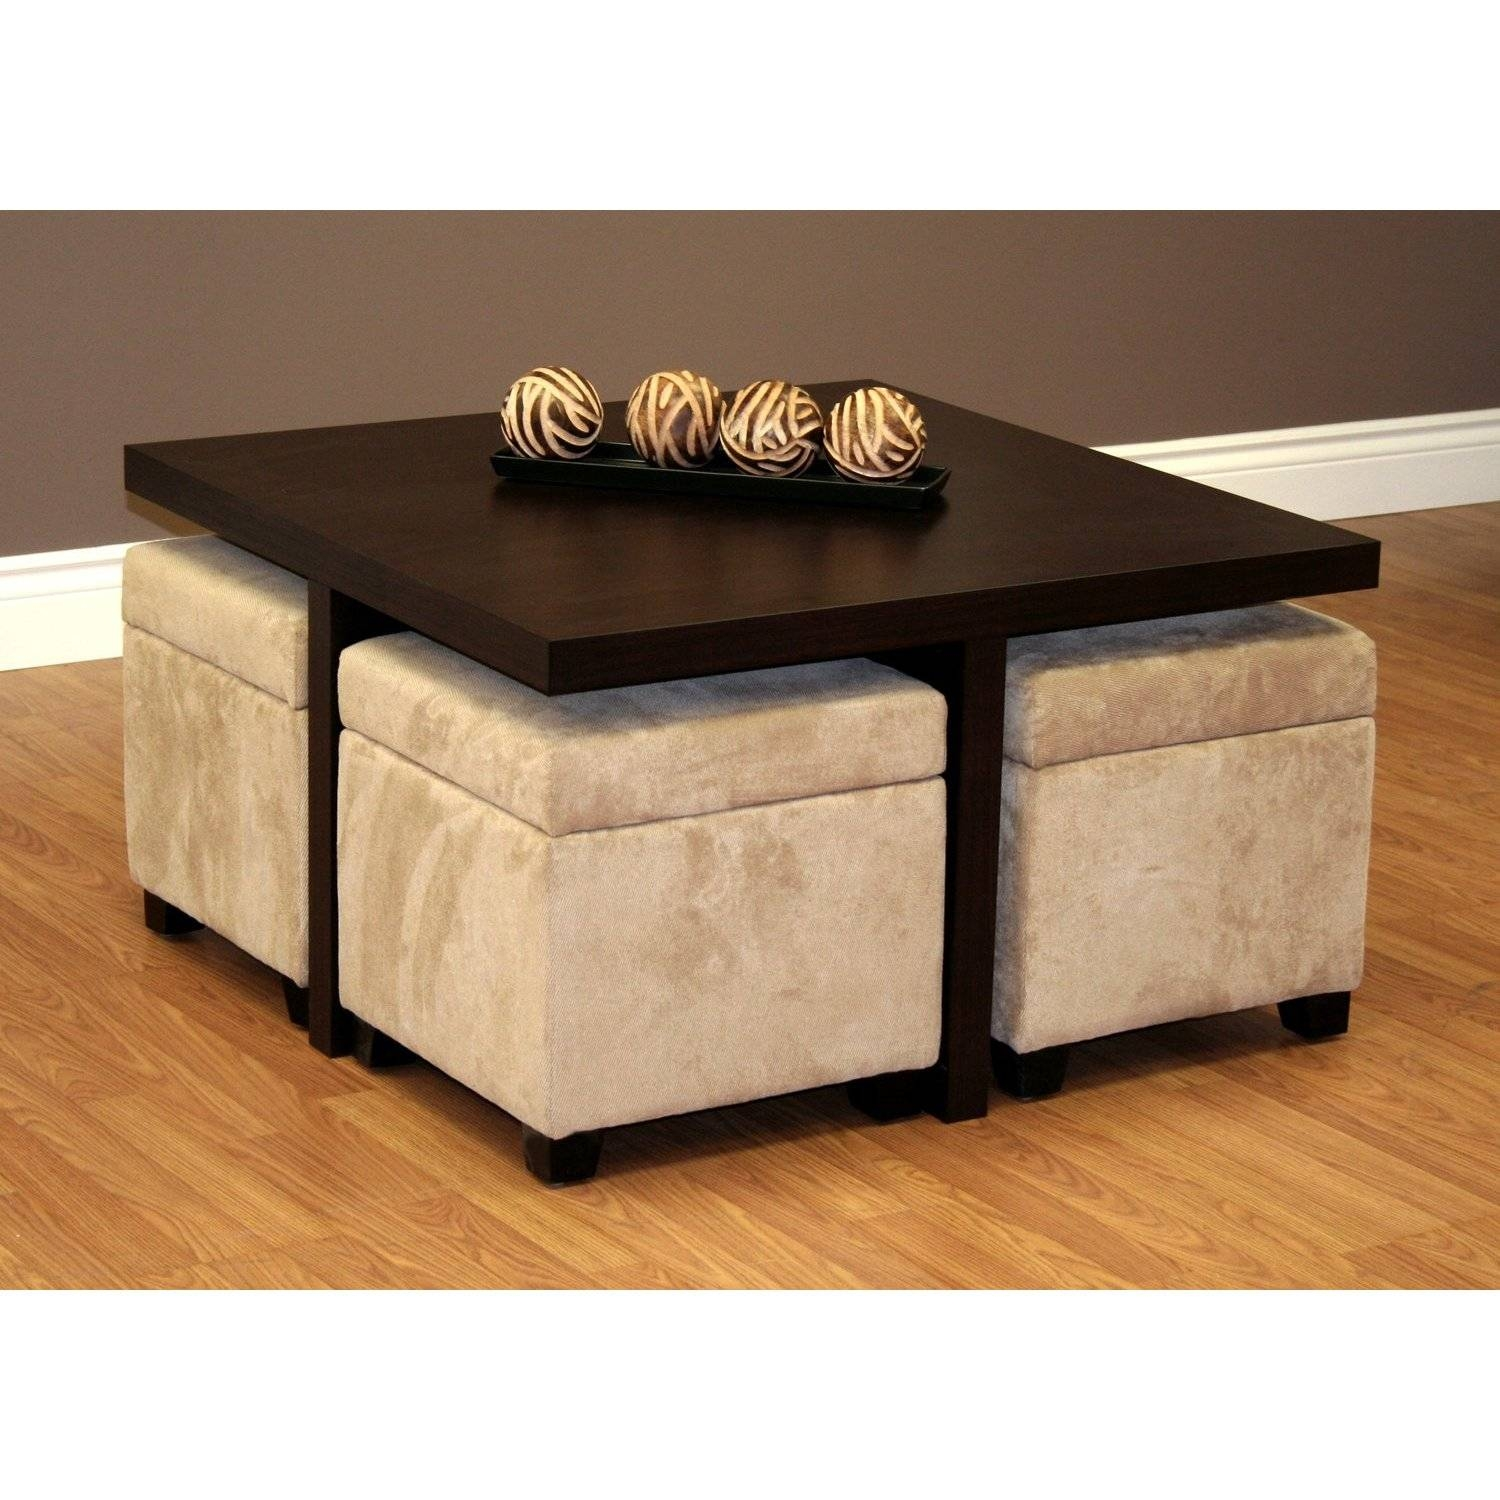 Furniture: Luxury Coffee Table With Stools For Living Room inside Round Coffee Tables With Storages (Image 19 of 30)